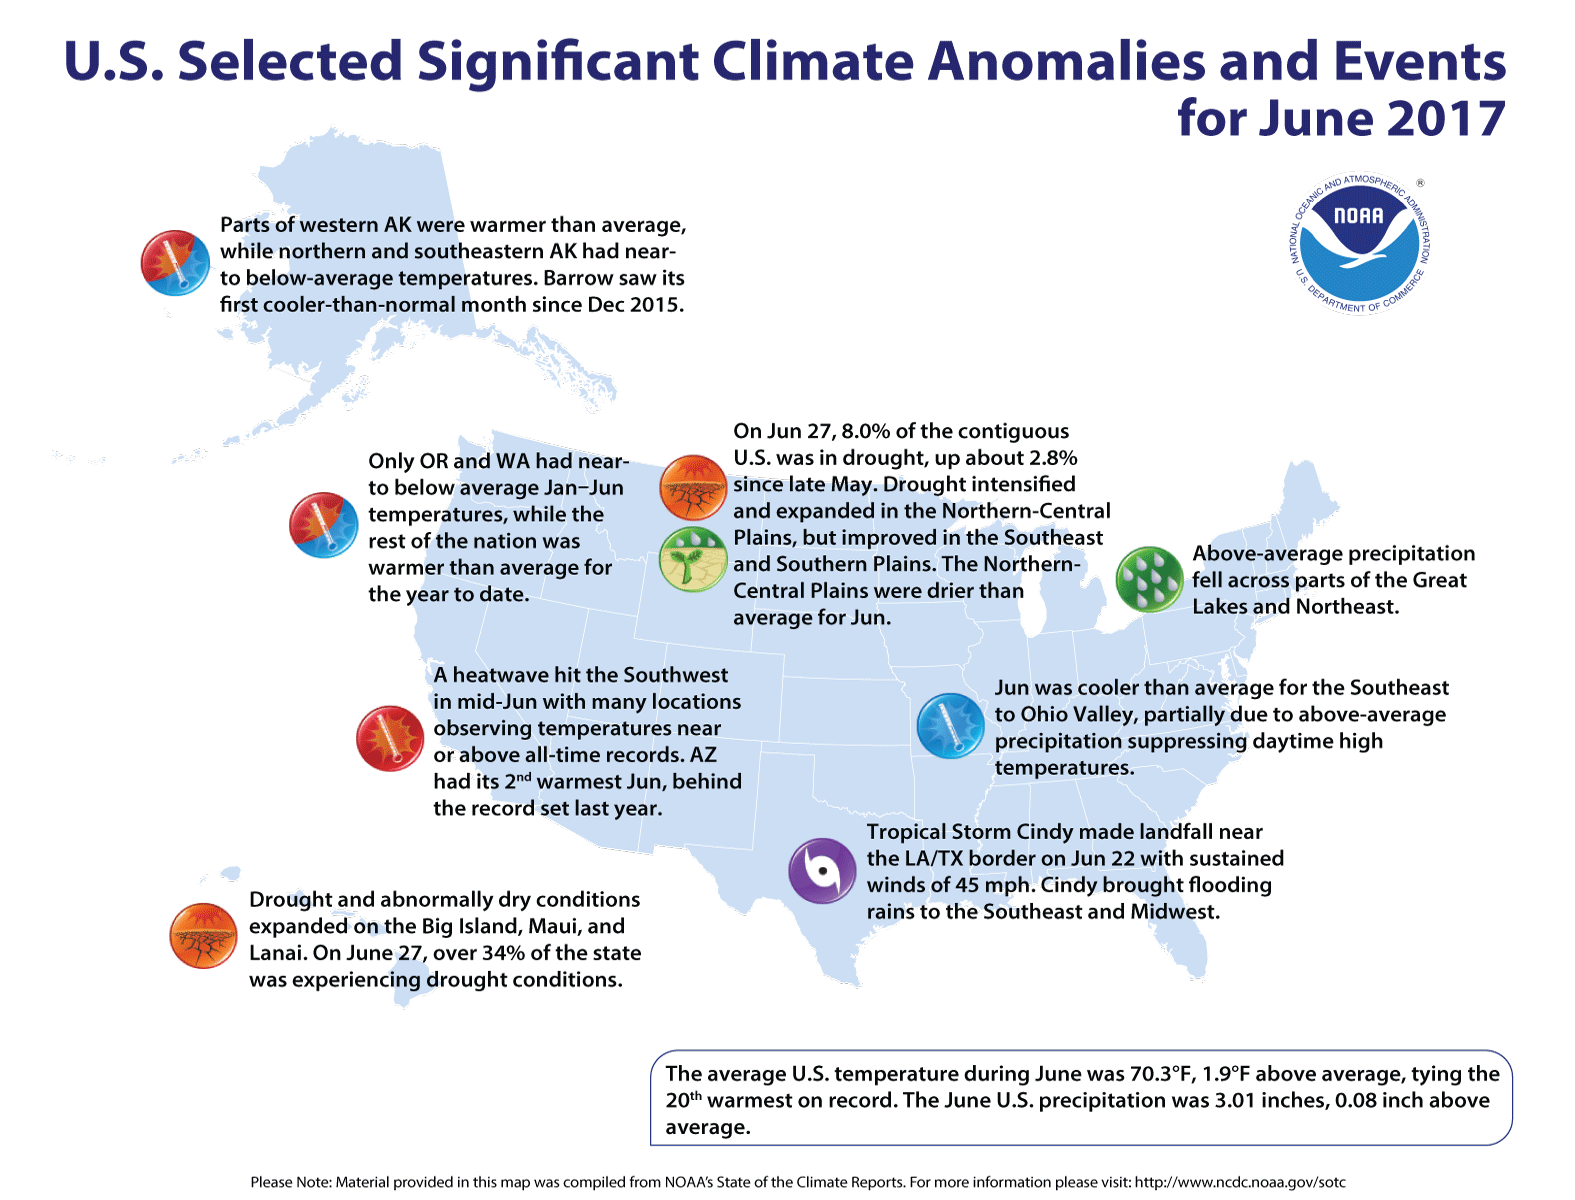 Map of U.S. selected significant climate anomalies and events for June 2017